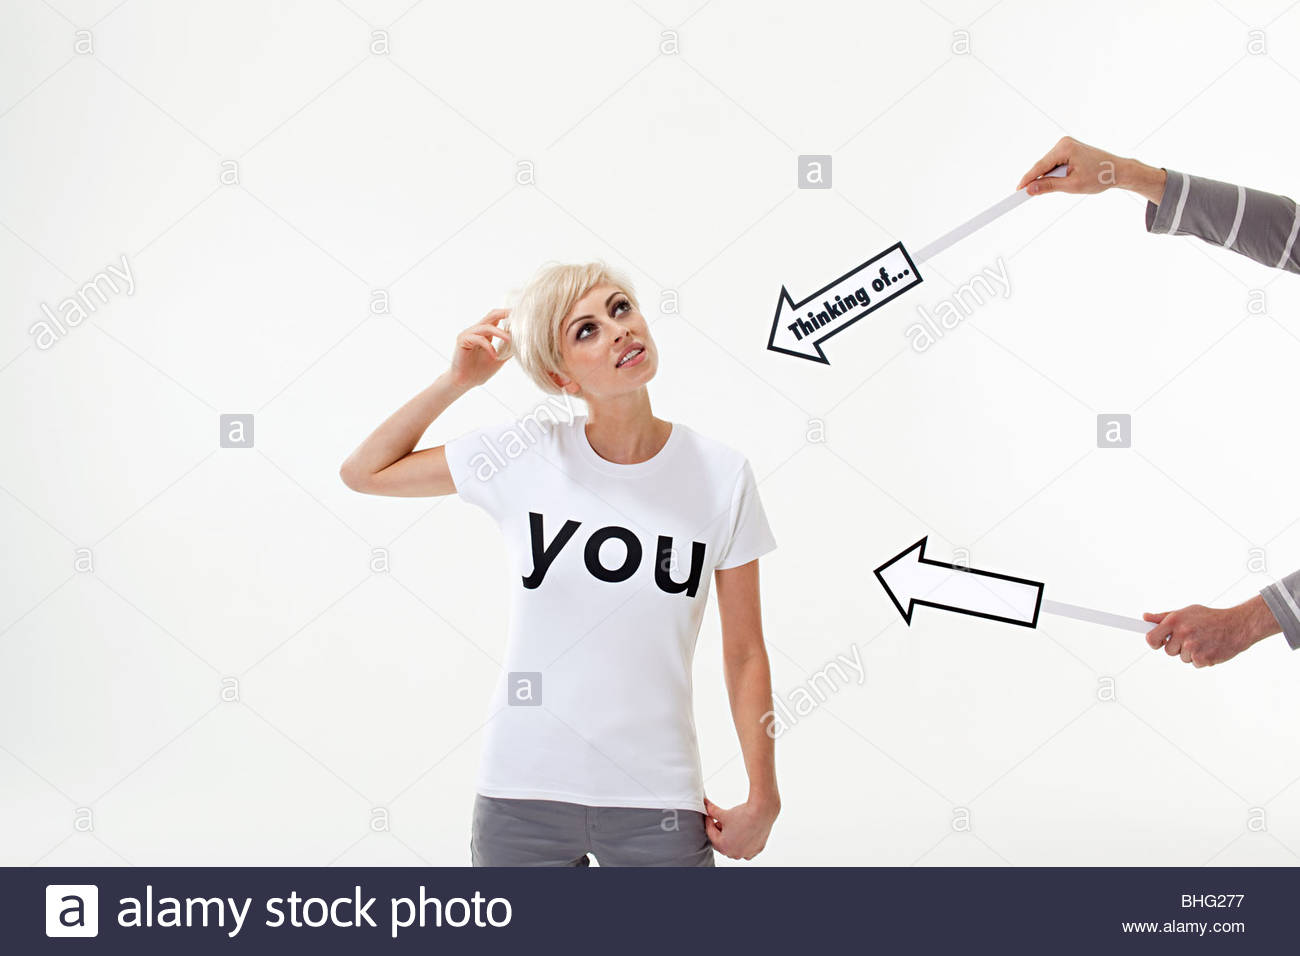 Person pointing signs at young woman - Stock Image